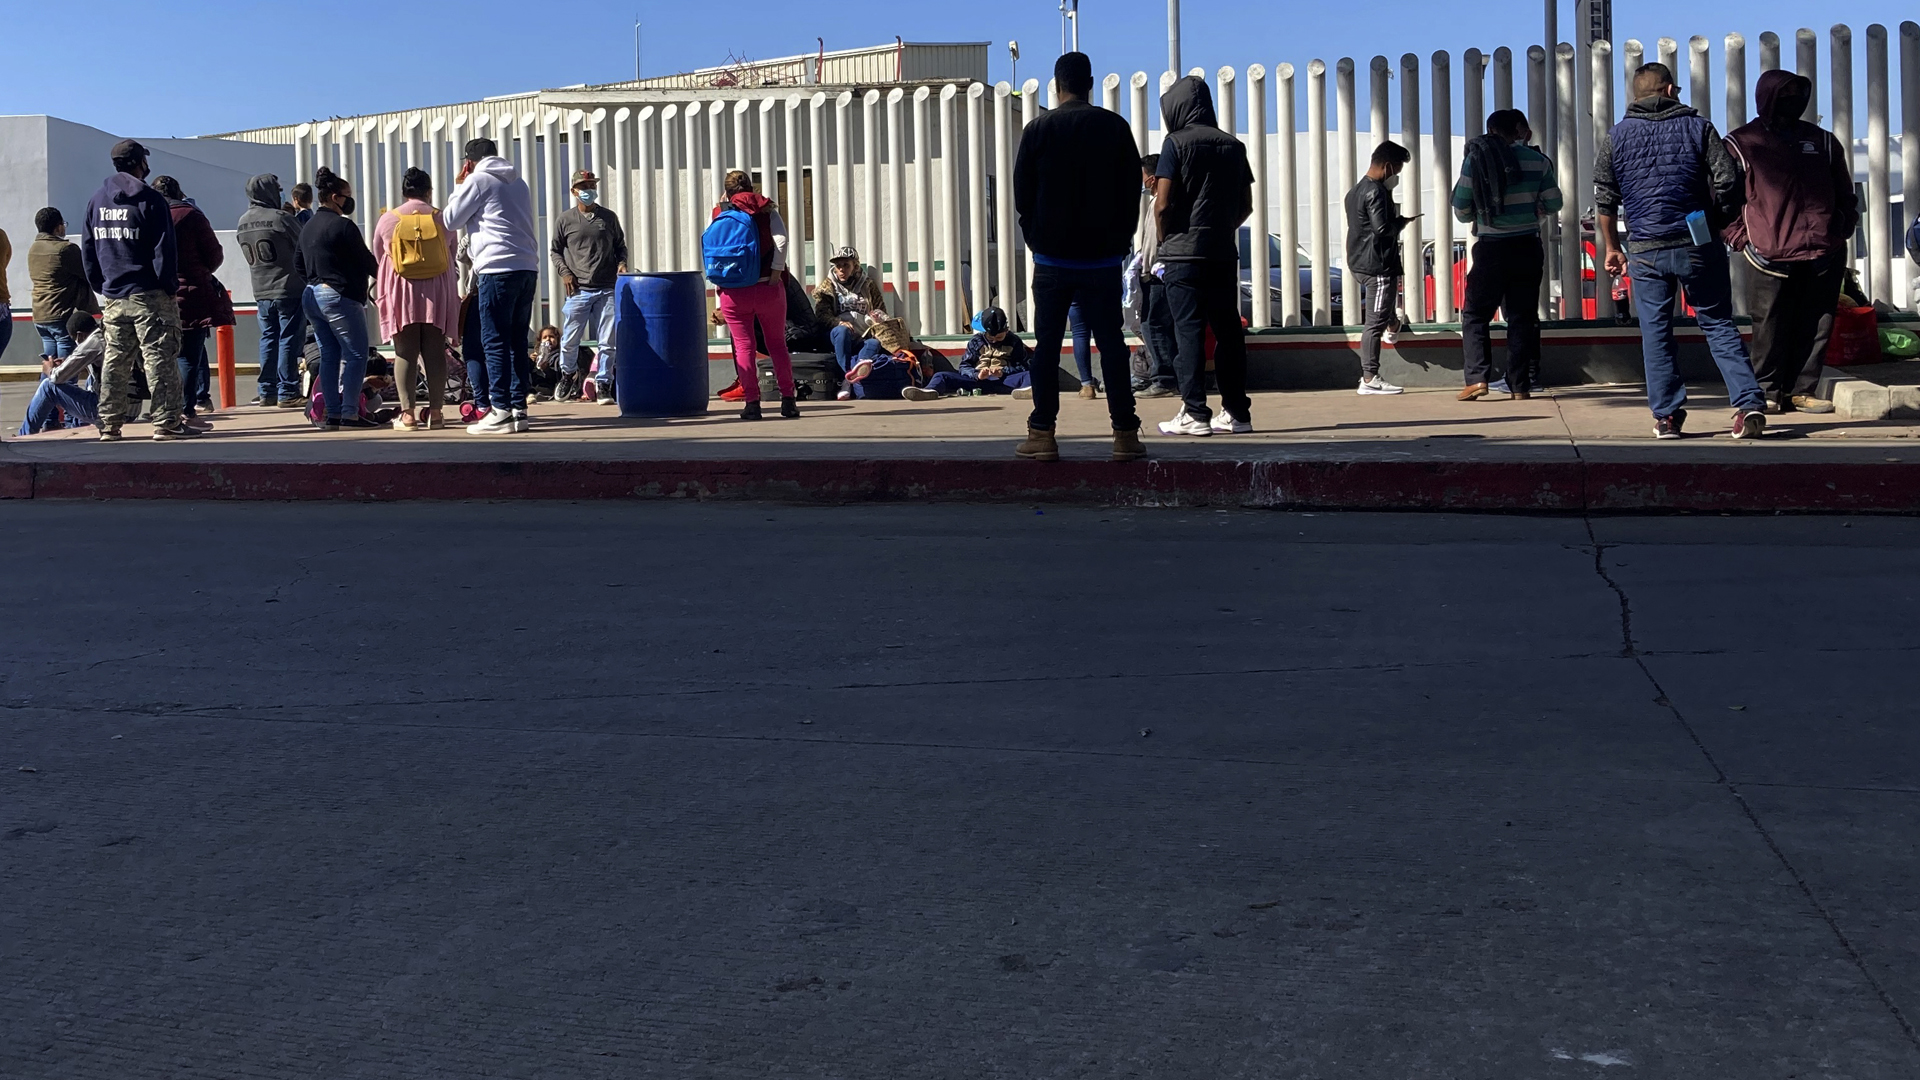 Migrants waiting to cross into the United States wait for news at the border crossing in Tijuana on Feb. 17, 2021.(Elliot Spagat/Associated Press)